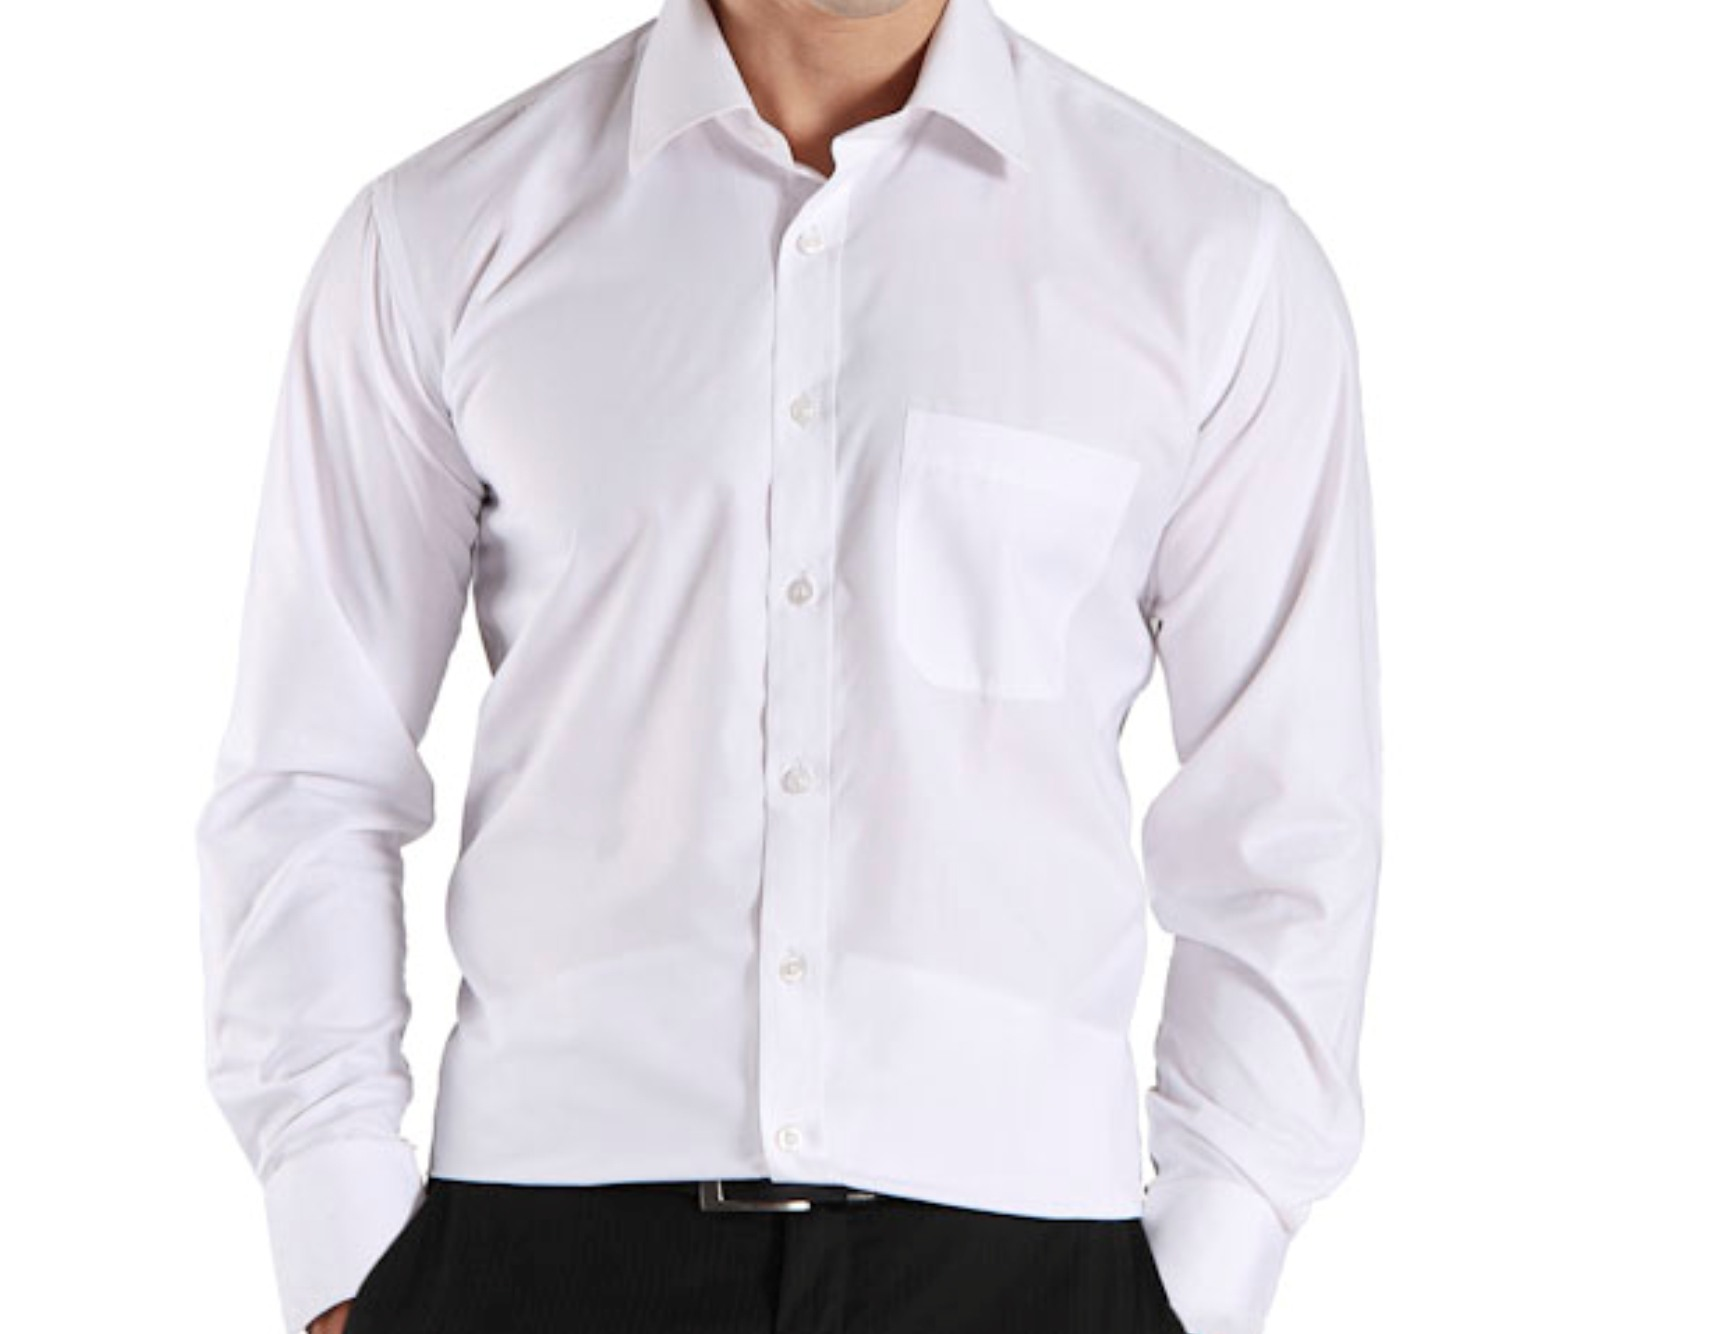 Buy Online Summer Wear Formal Shirts In Cool Pastel Shades